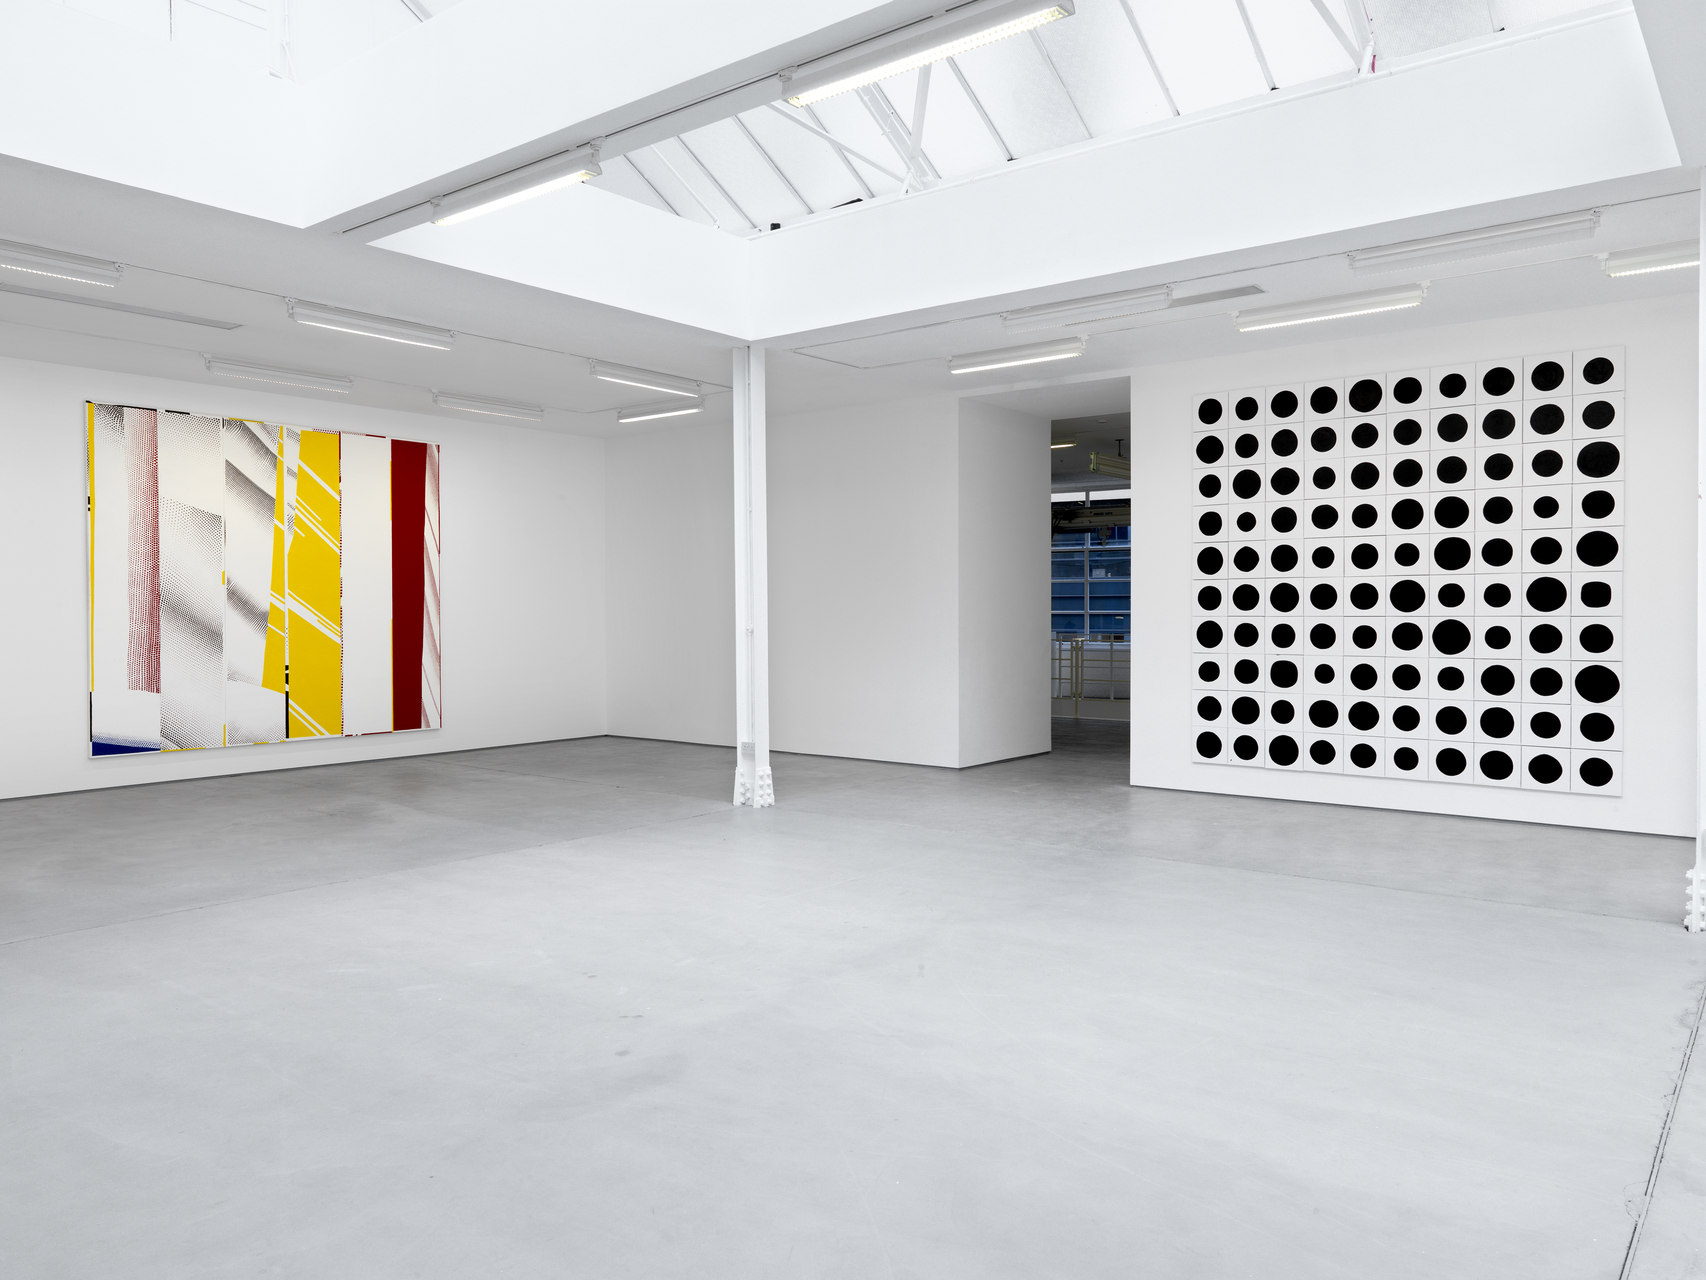 006_Installation view_Jonathan Horowitz_3048cm Paintings_SCHQ_Kingly St_26 March-30 May 2015